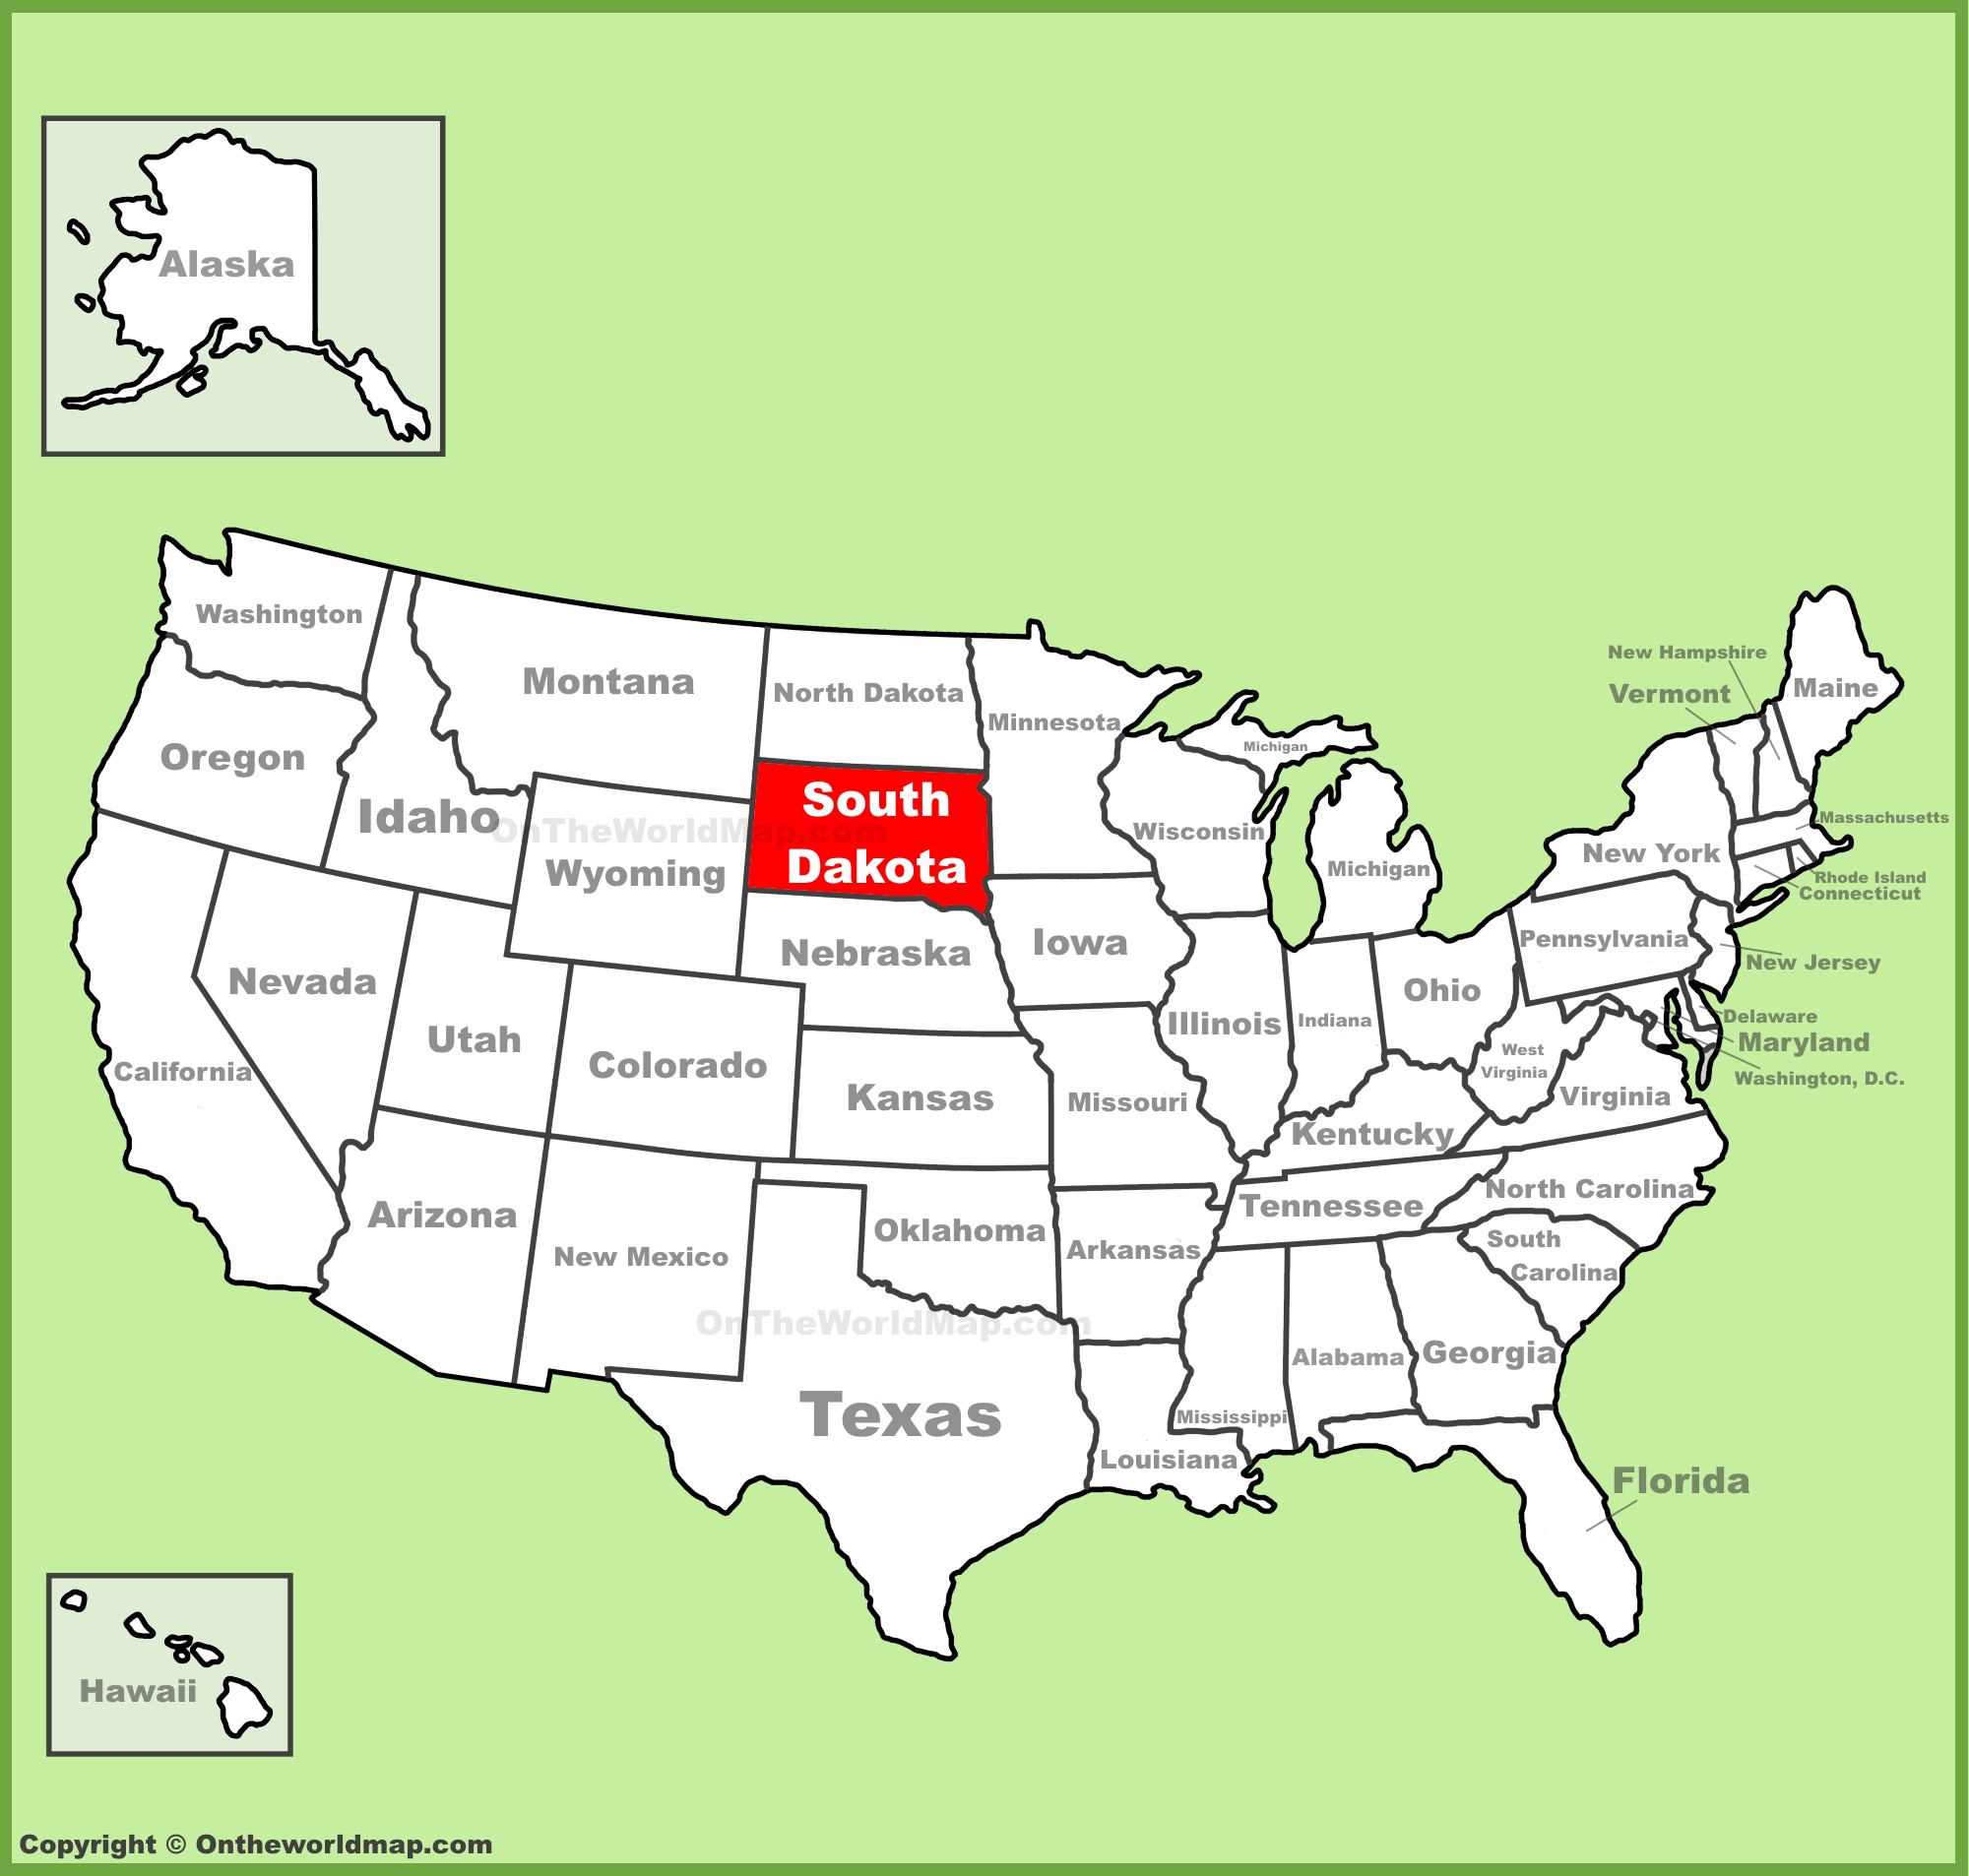 South Dakota location on the US Map